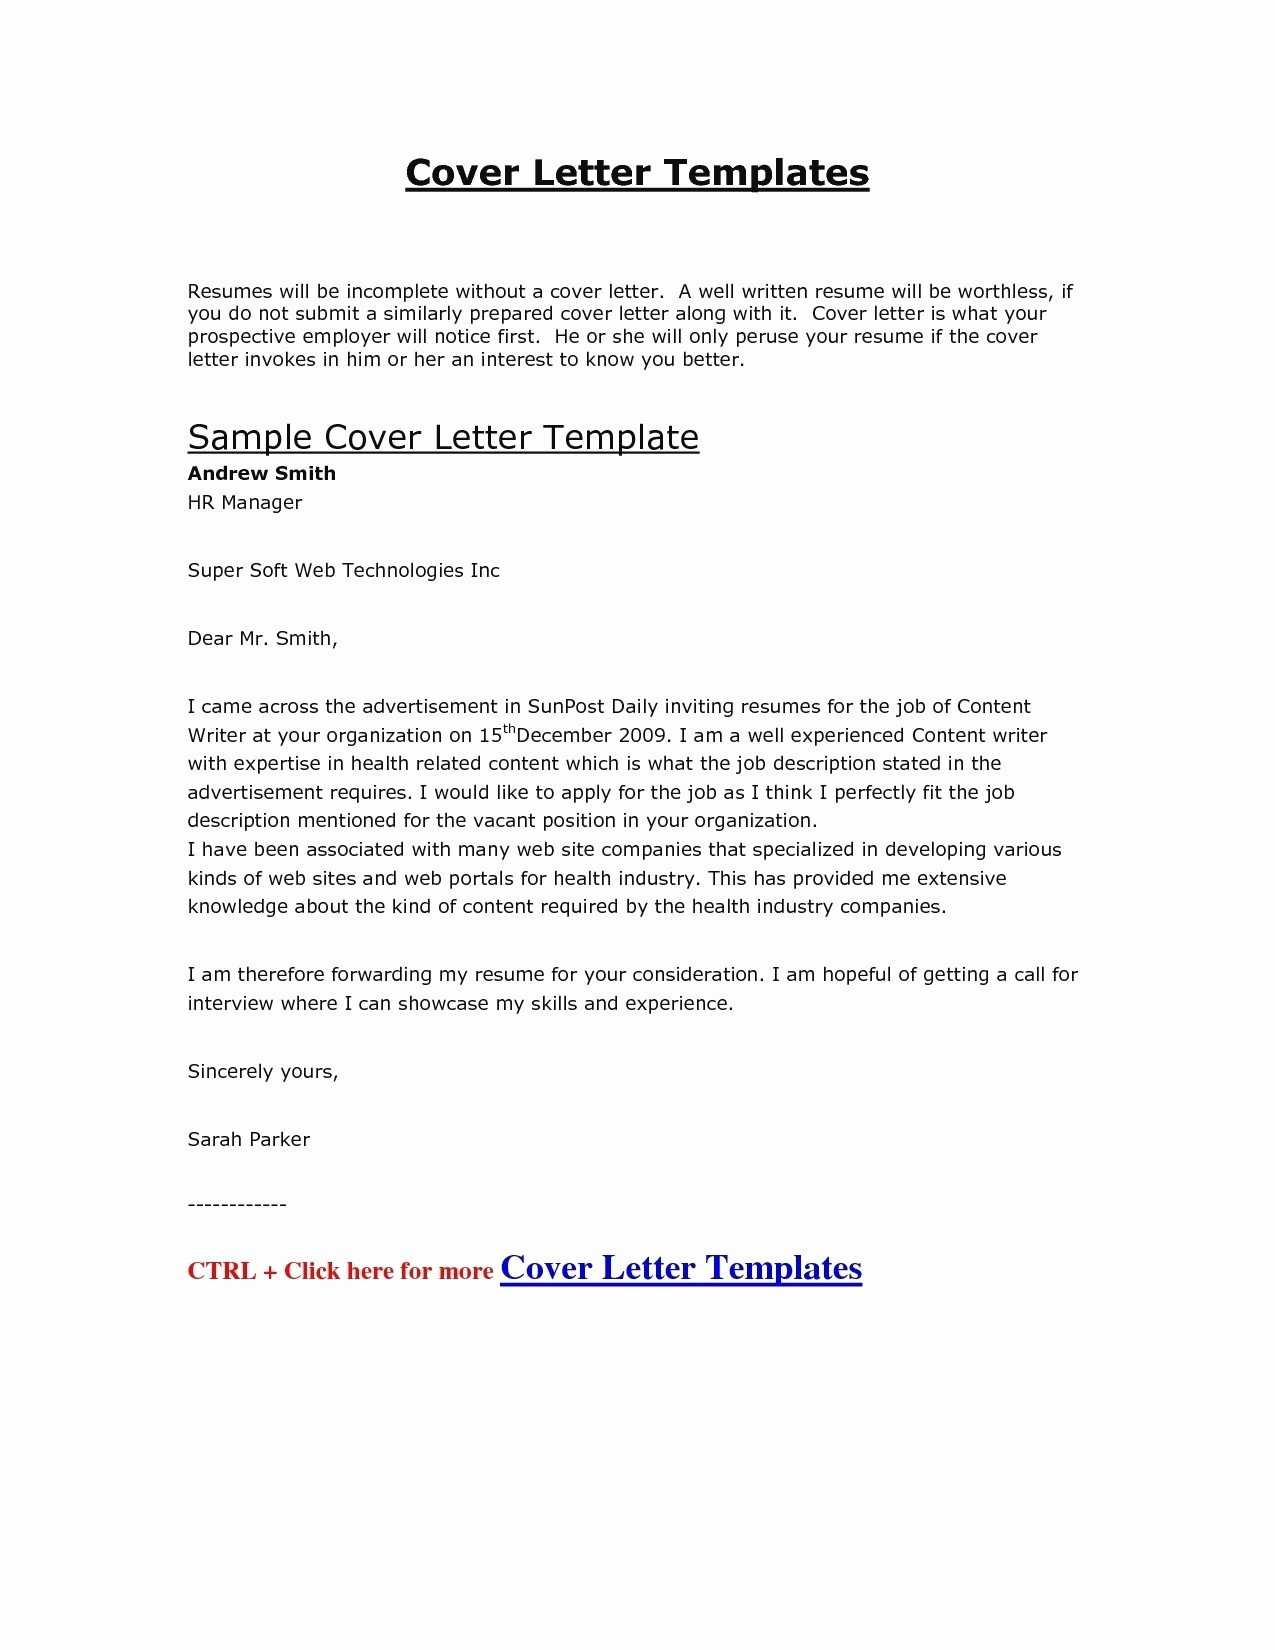 formal letter format template Collection-Job Application Letter format Template Copy Cover Letter Template Hr Fresh A Good Cover Letter Sample 1-e